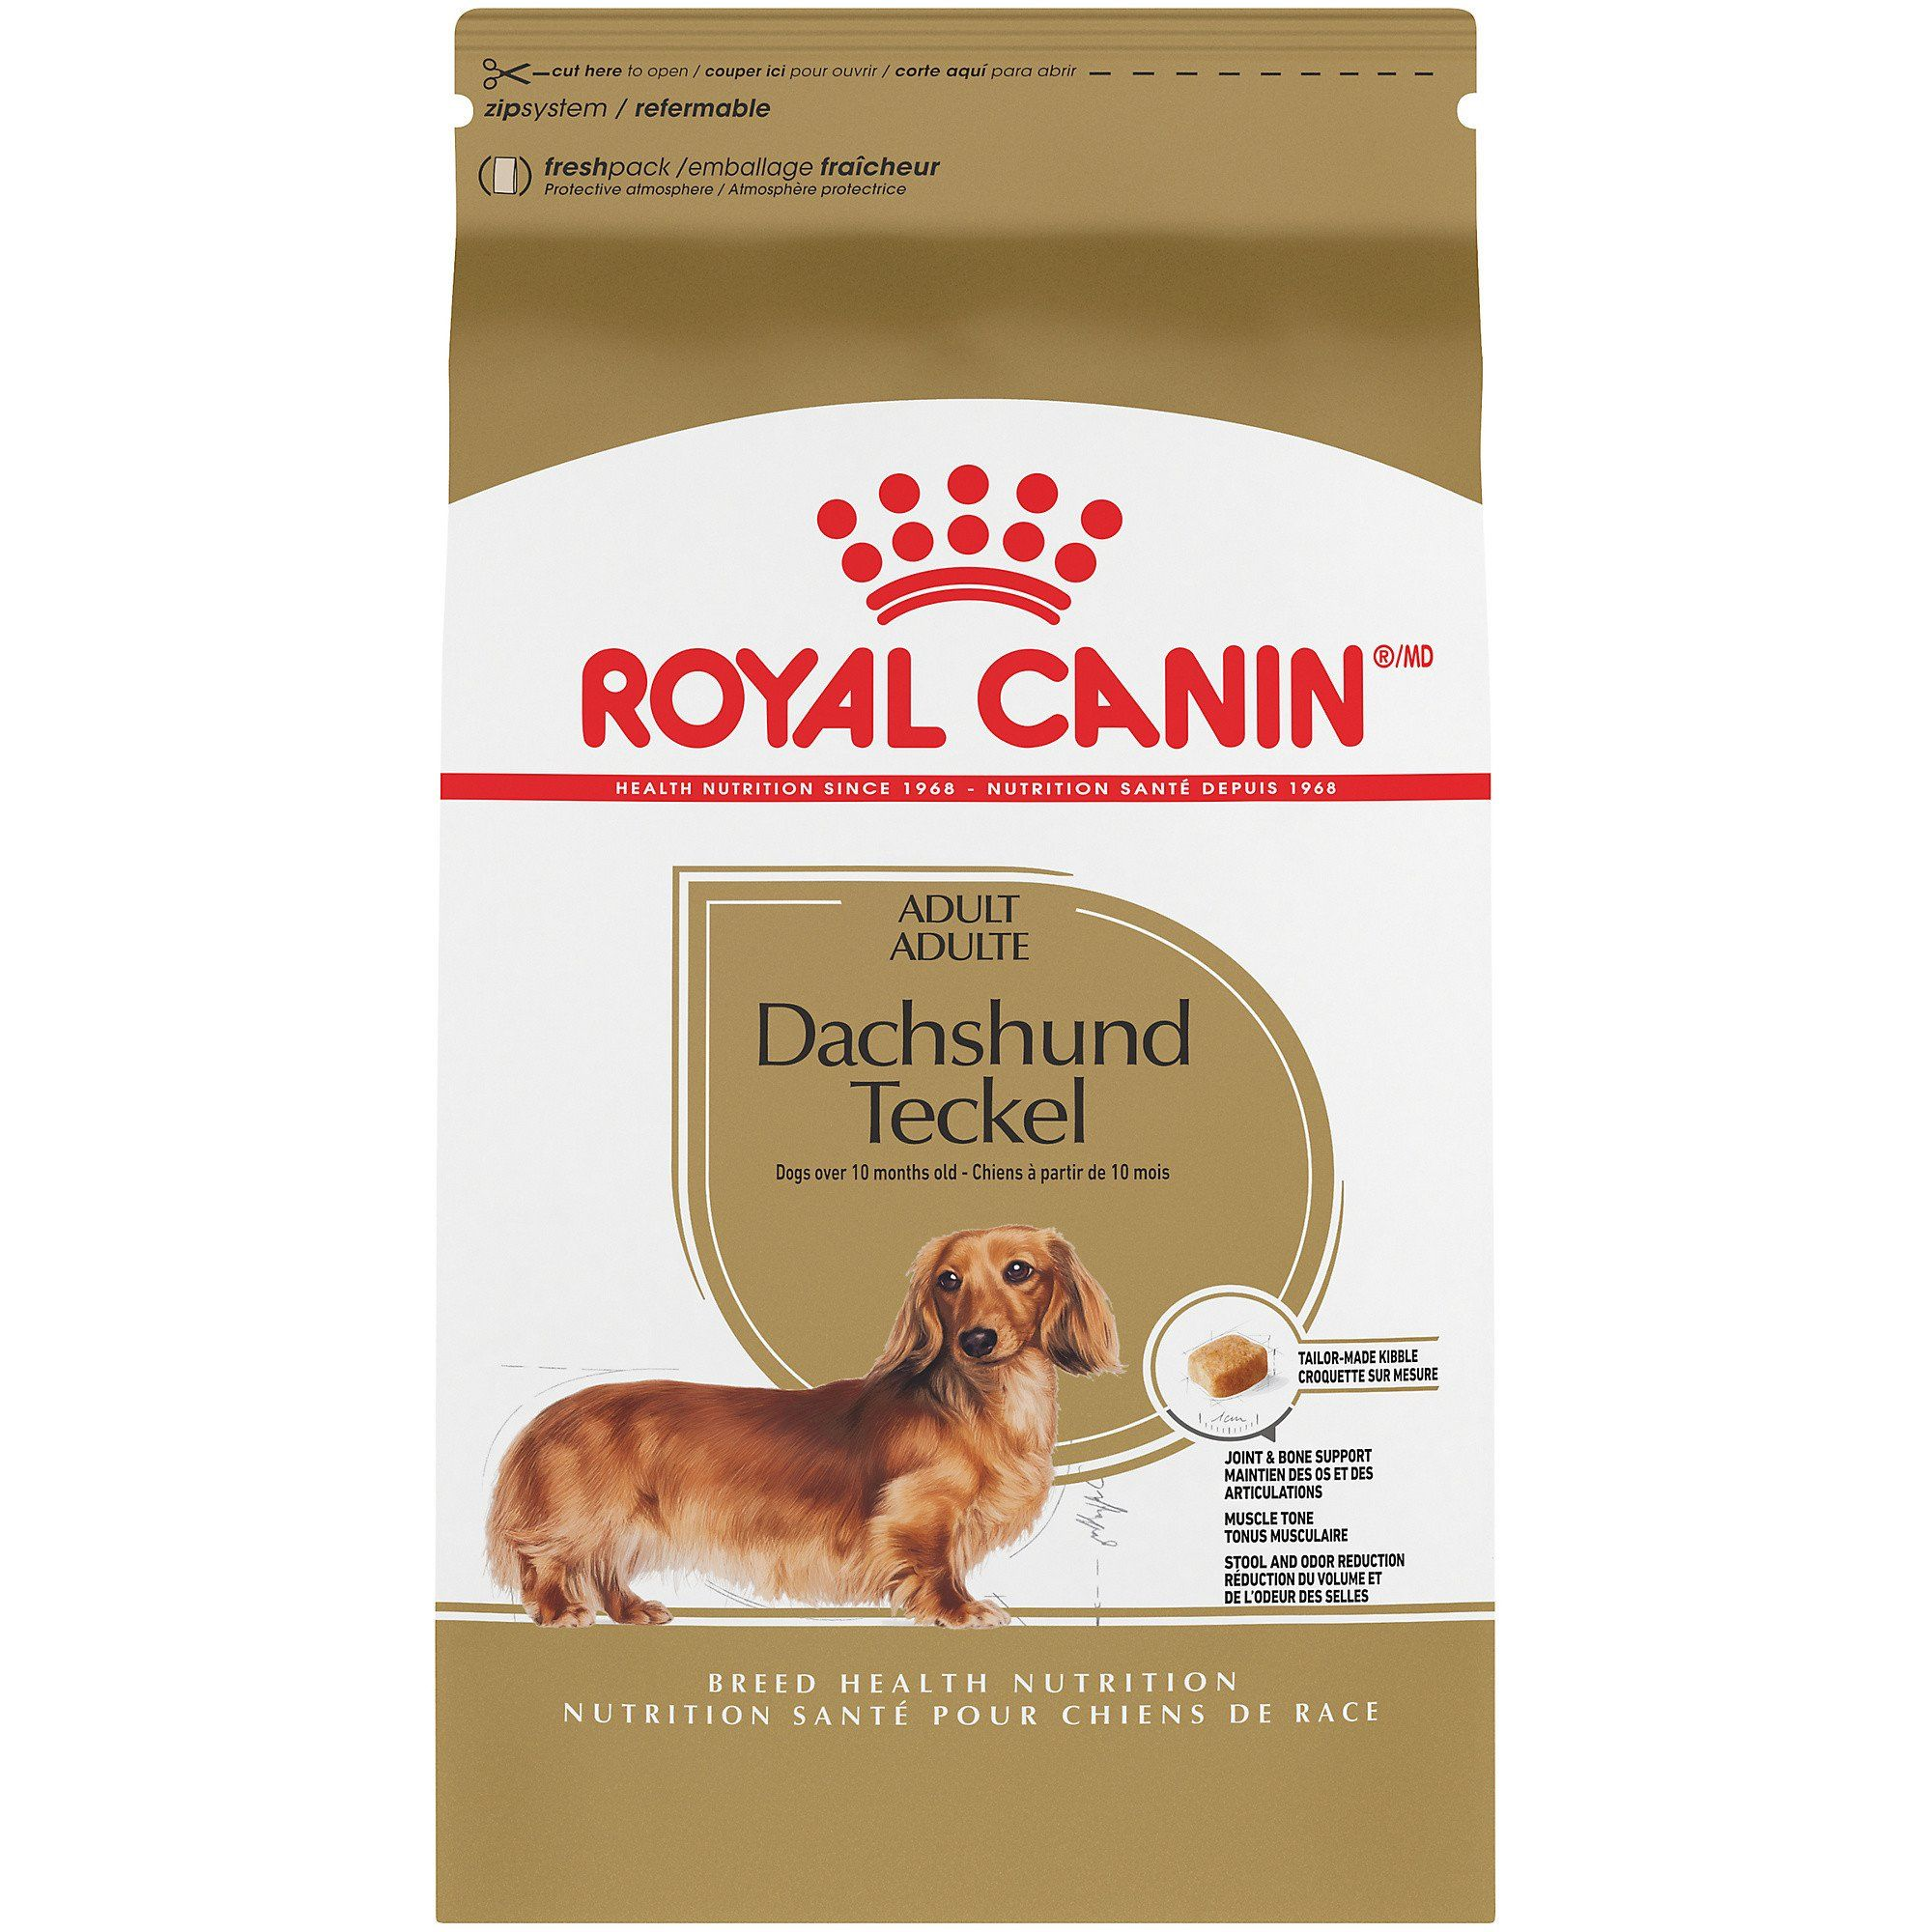 Royal Canin Breed Health Nutrition Dachshund Teckel Adult Dry Dog